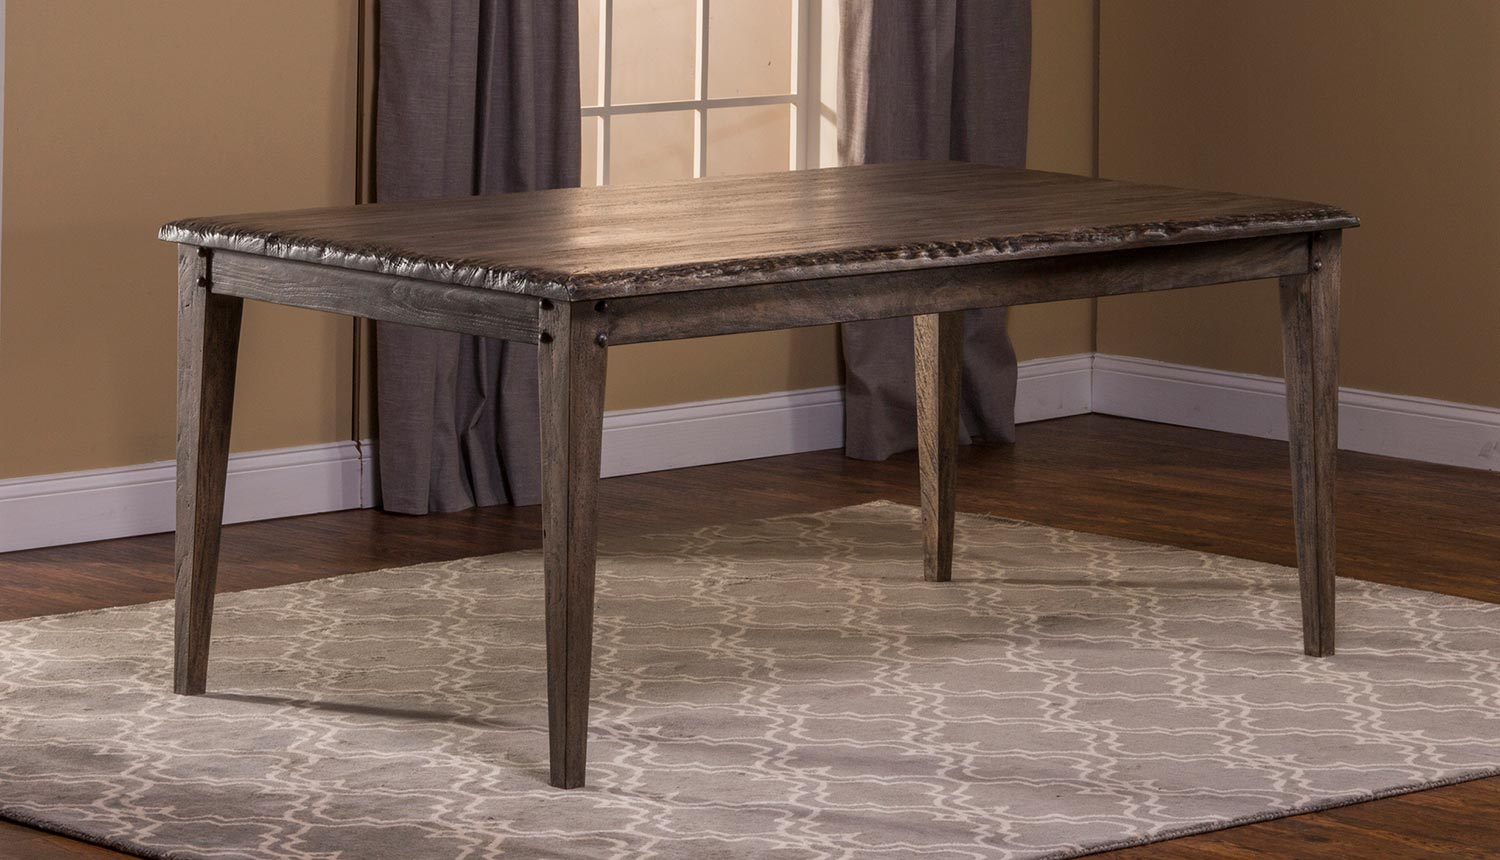 hillsdale lorient rectangle dining table - washed charcoal gray 5678 Charcoal Dining Table